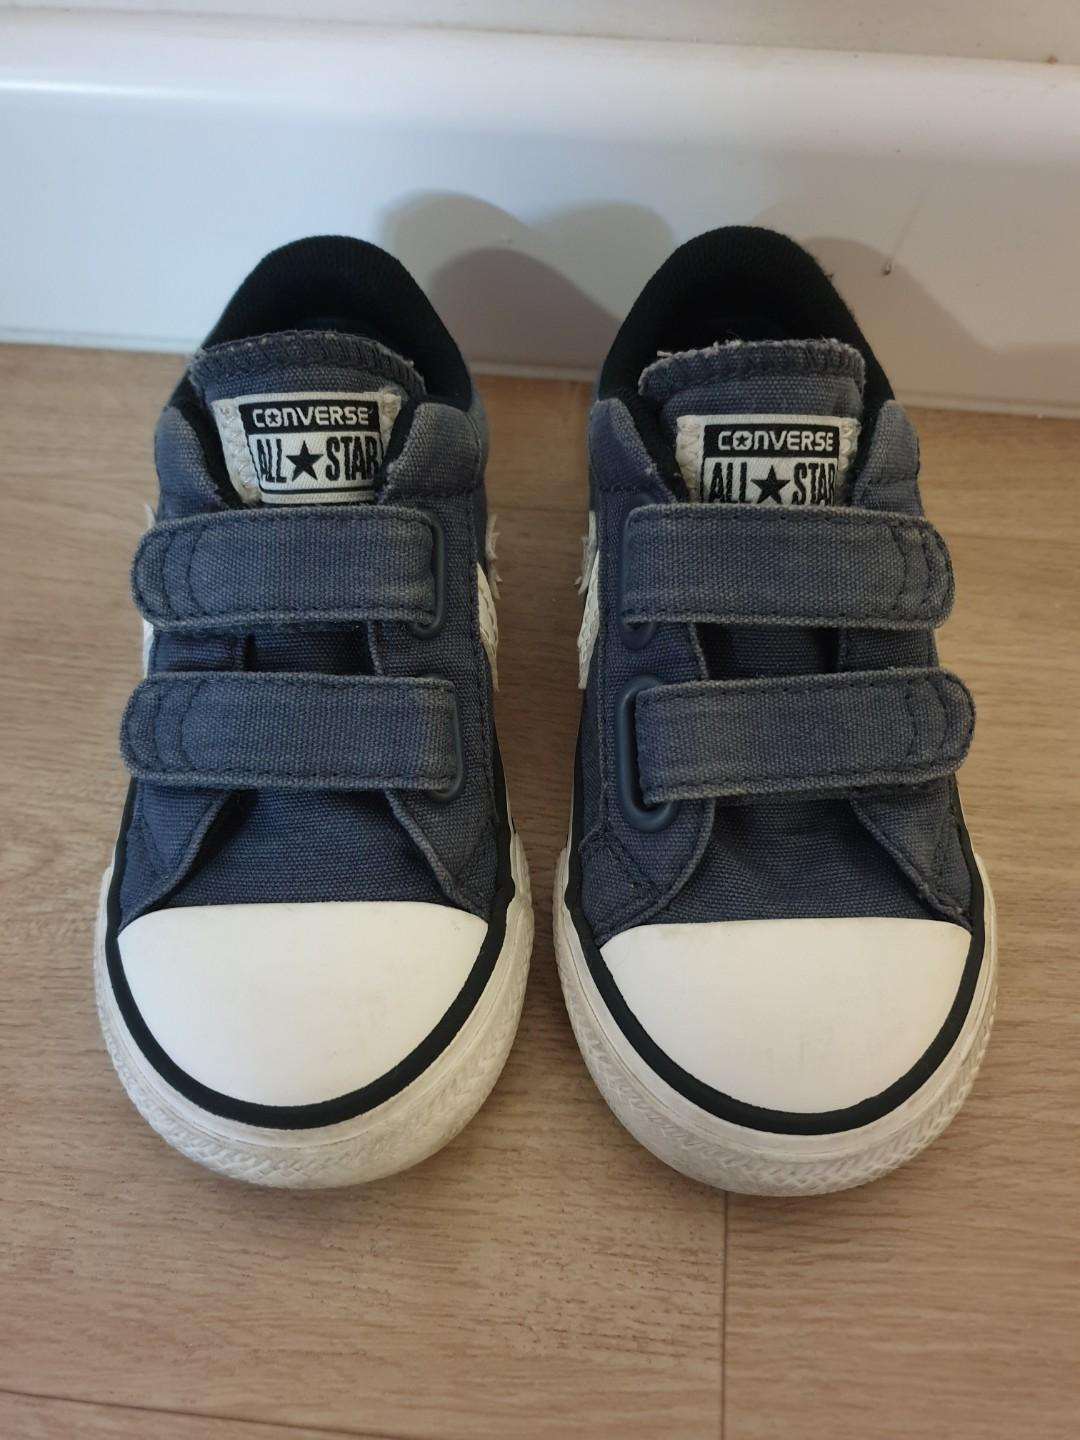 Converse Shoes for small kids, Babies